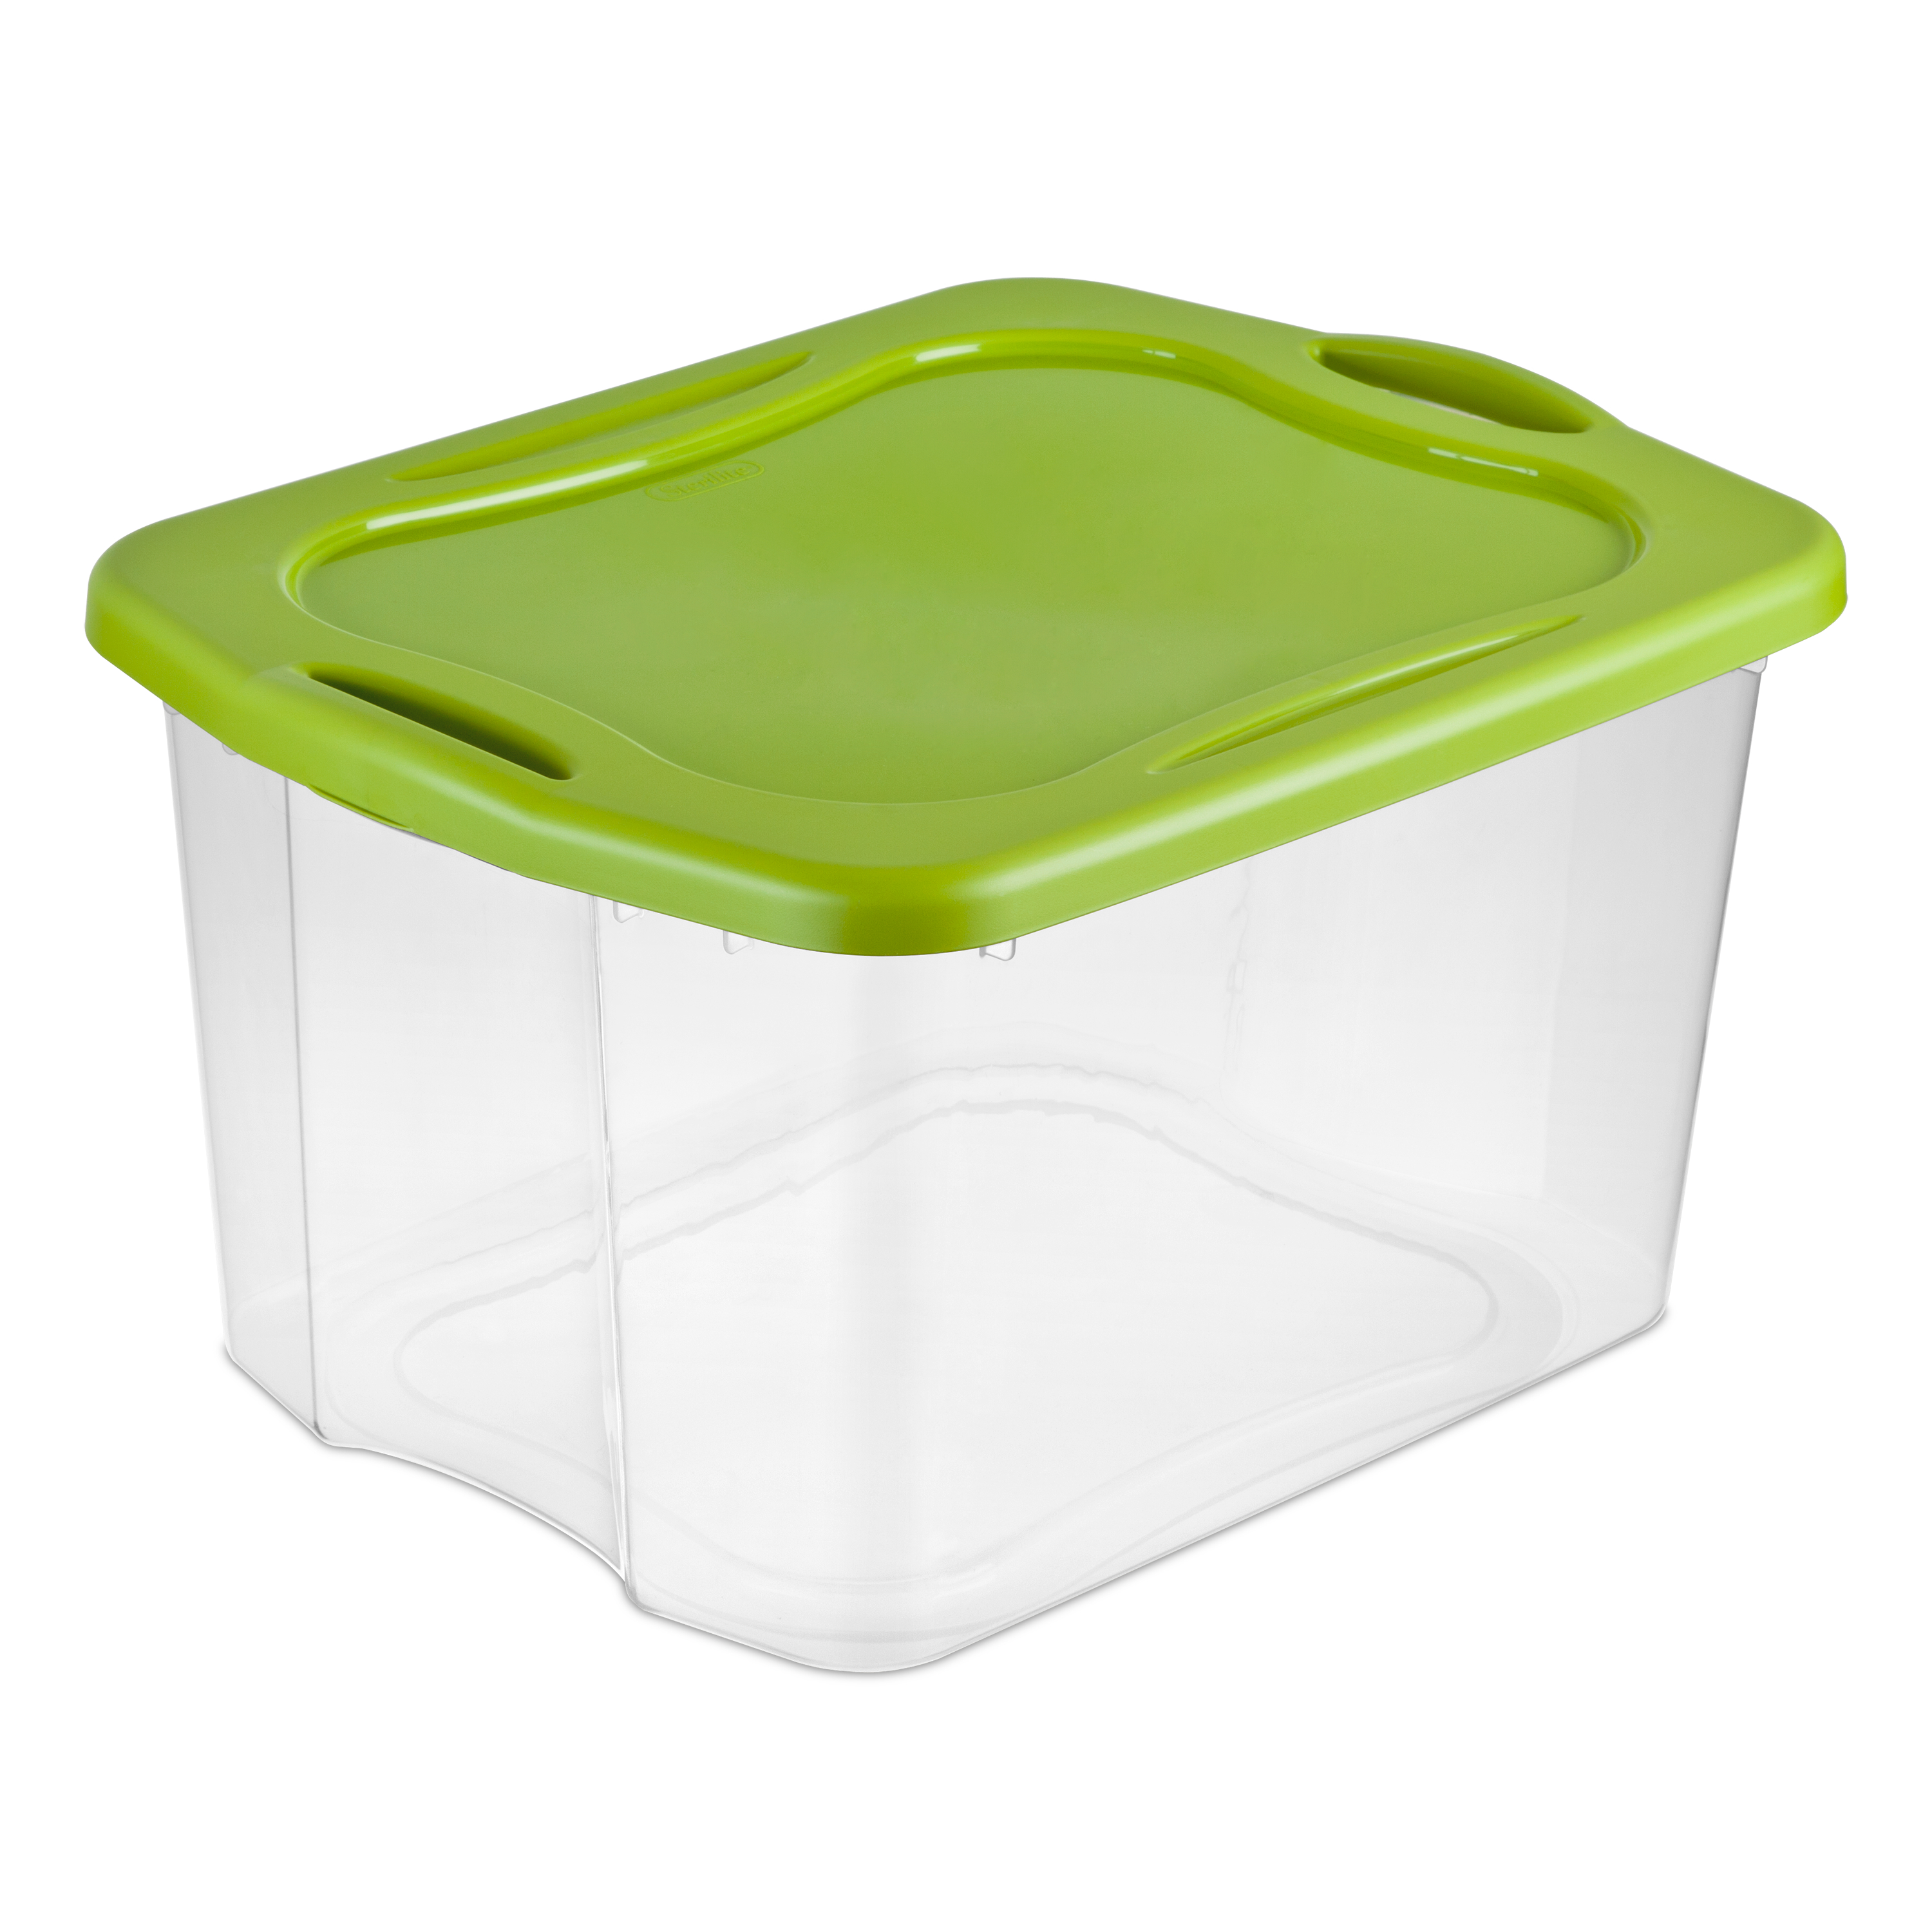 Sterilite, 70 Quart / 66 Liter EZ Carry Container